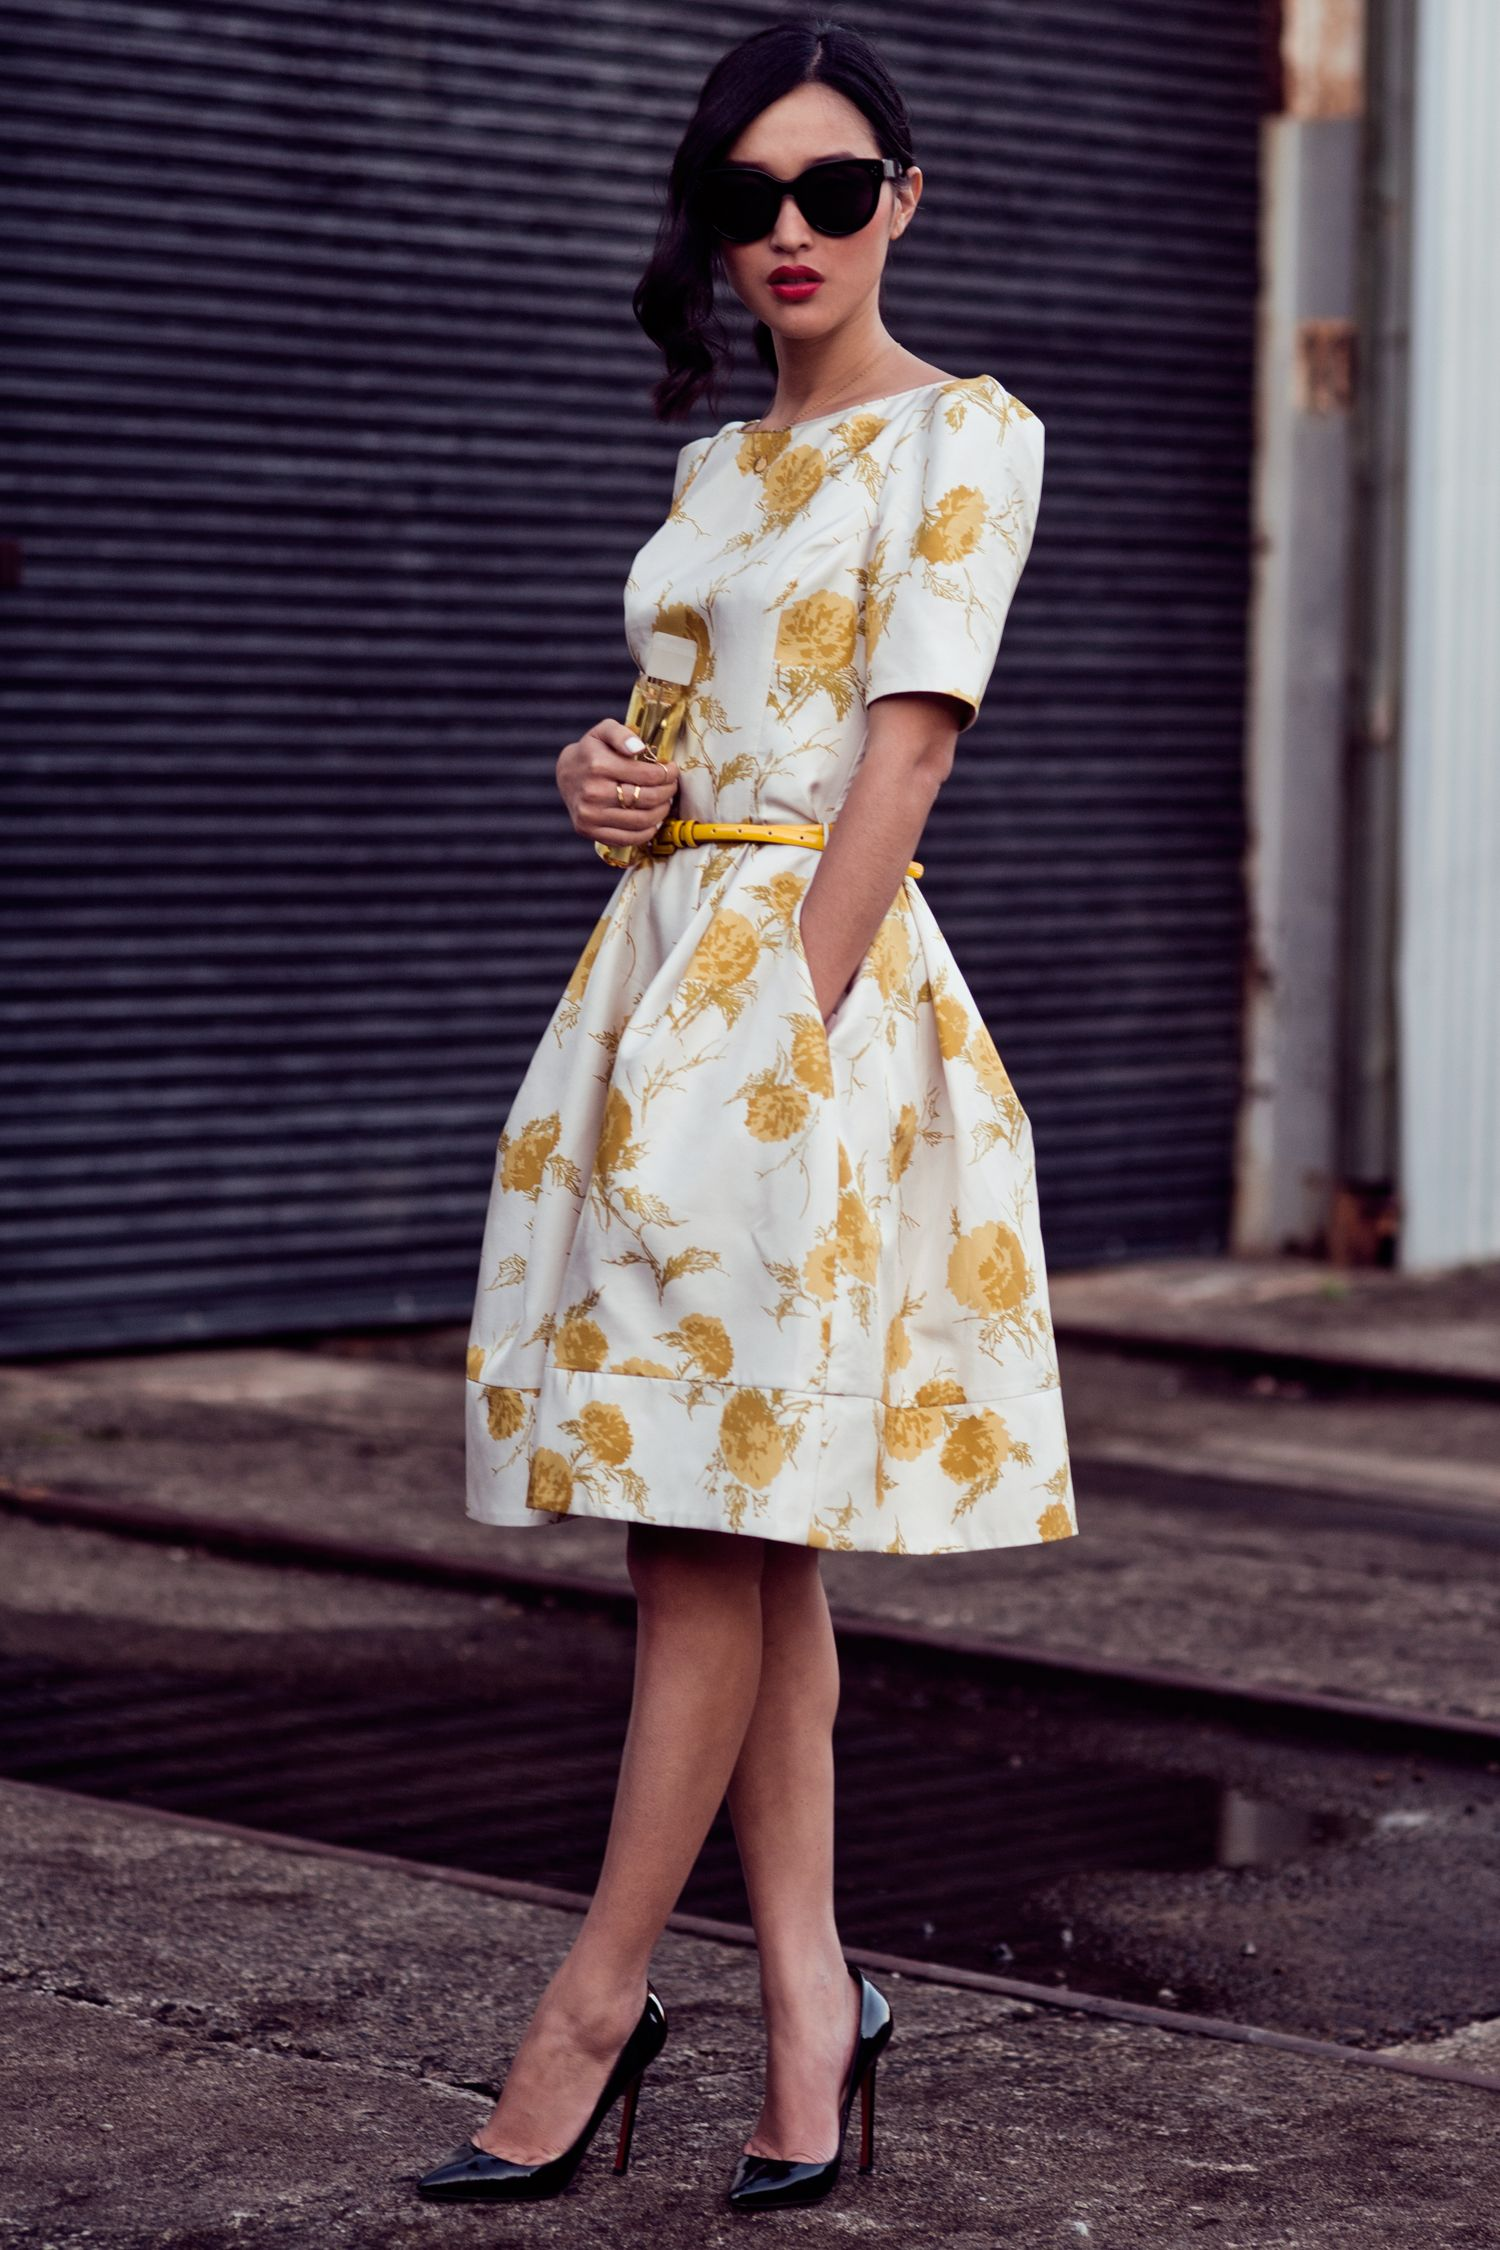 yellow floral dress 2017 with black pumps